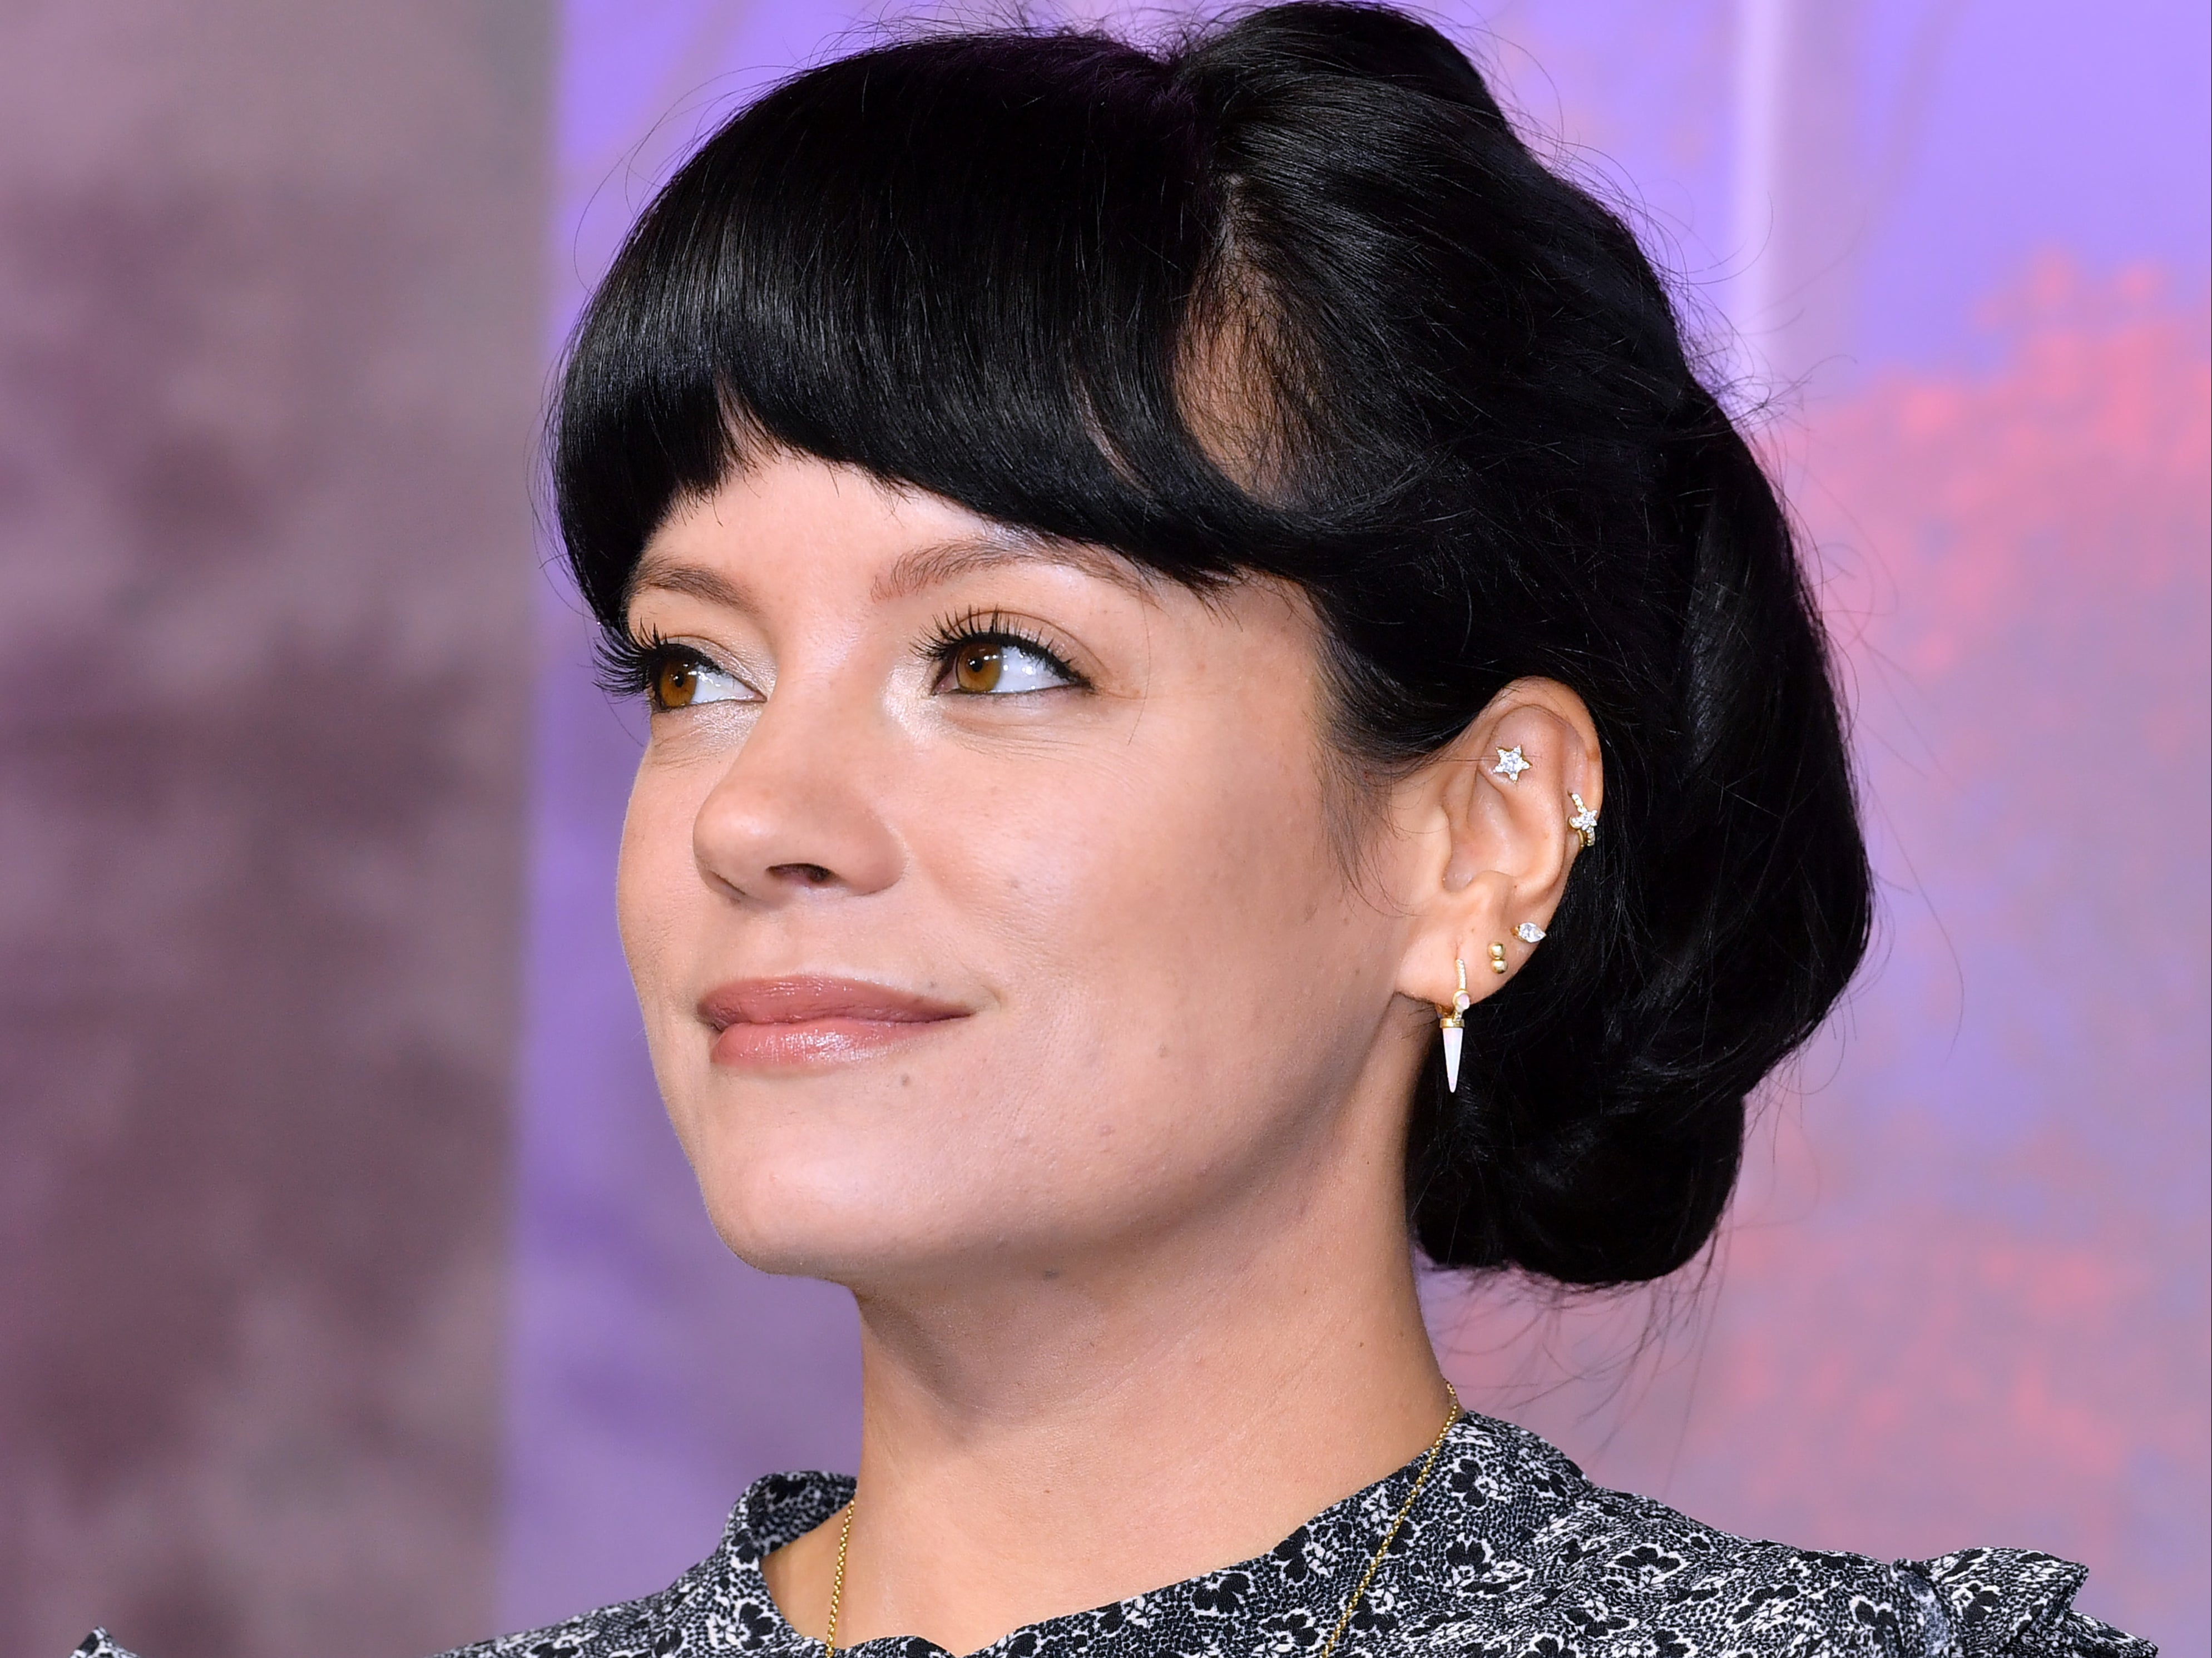 Lily Allen says she won't release music on a major label again